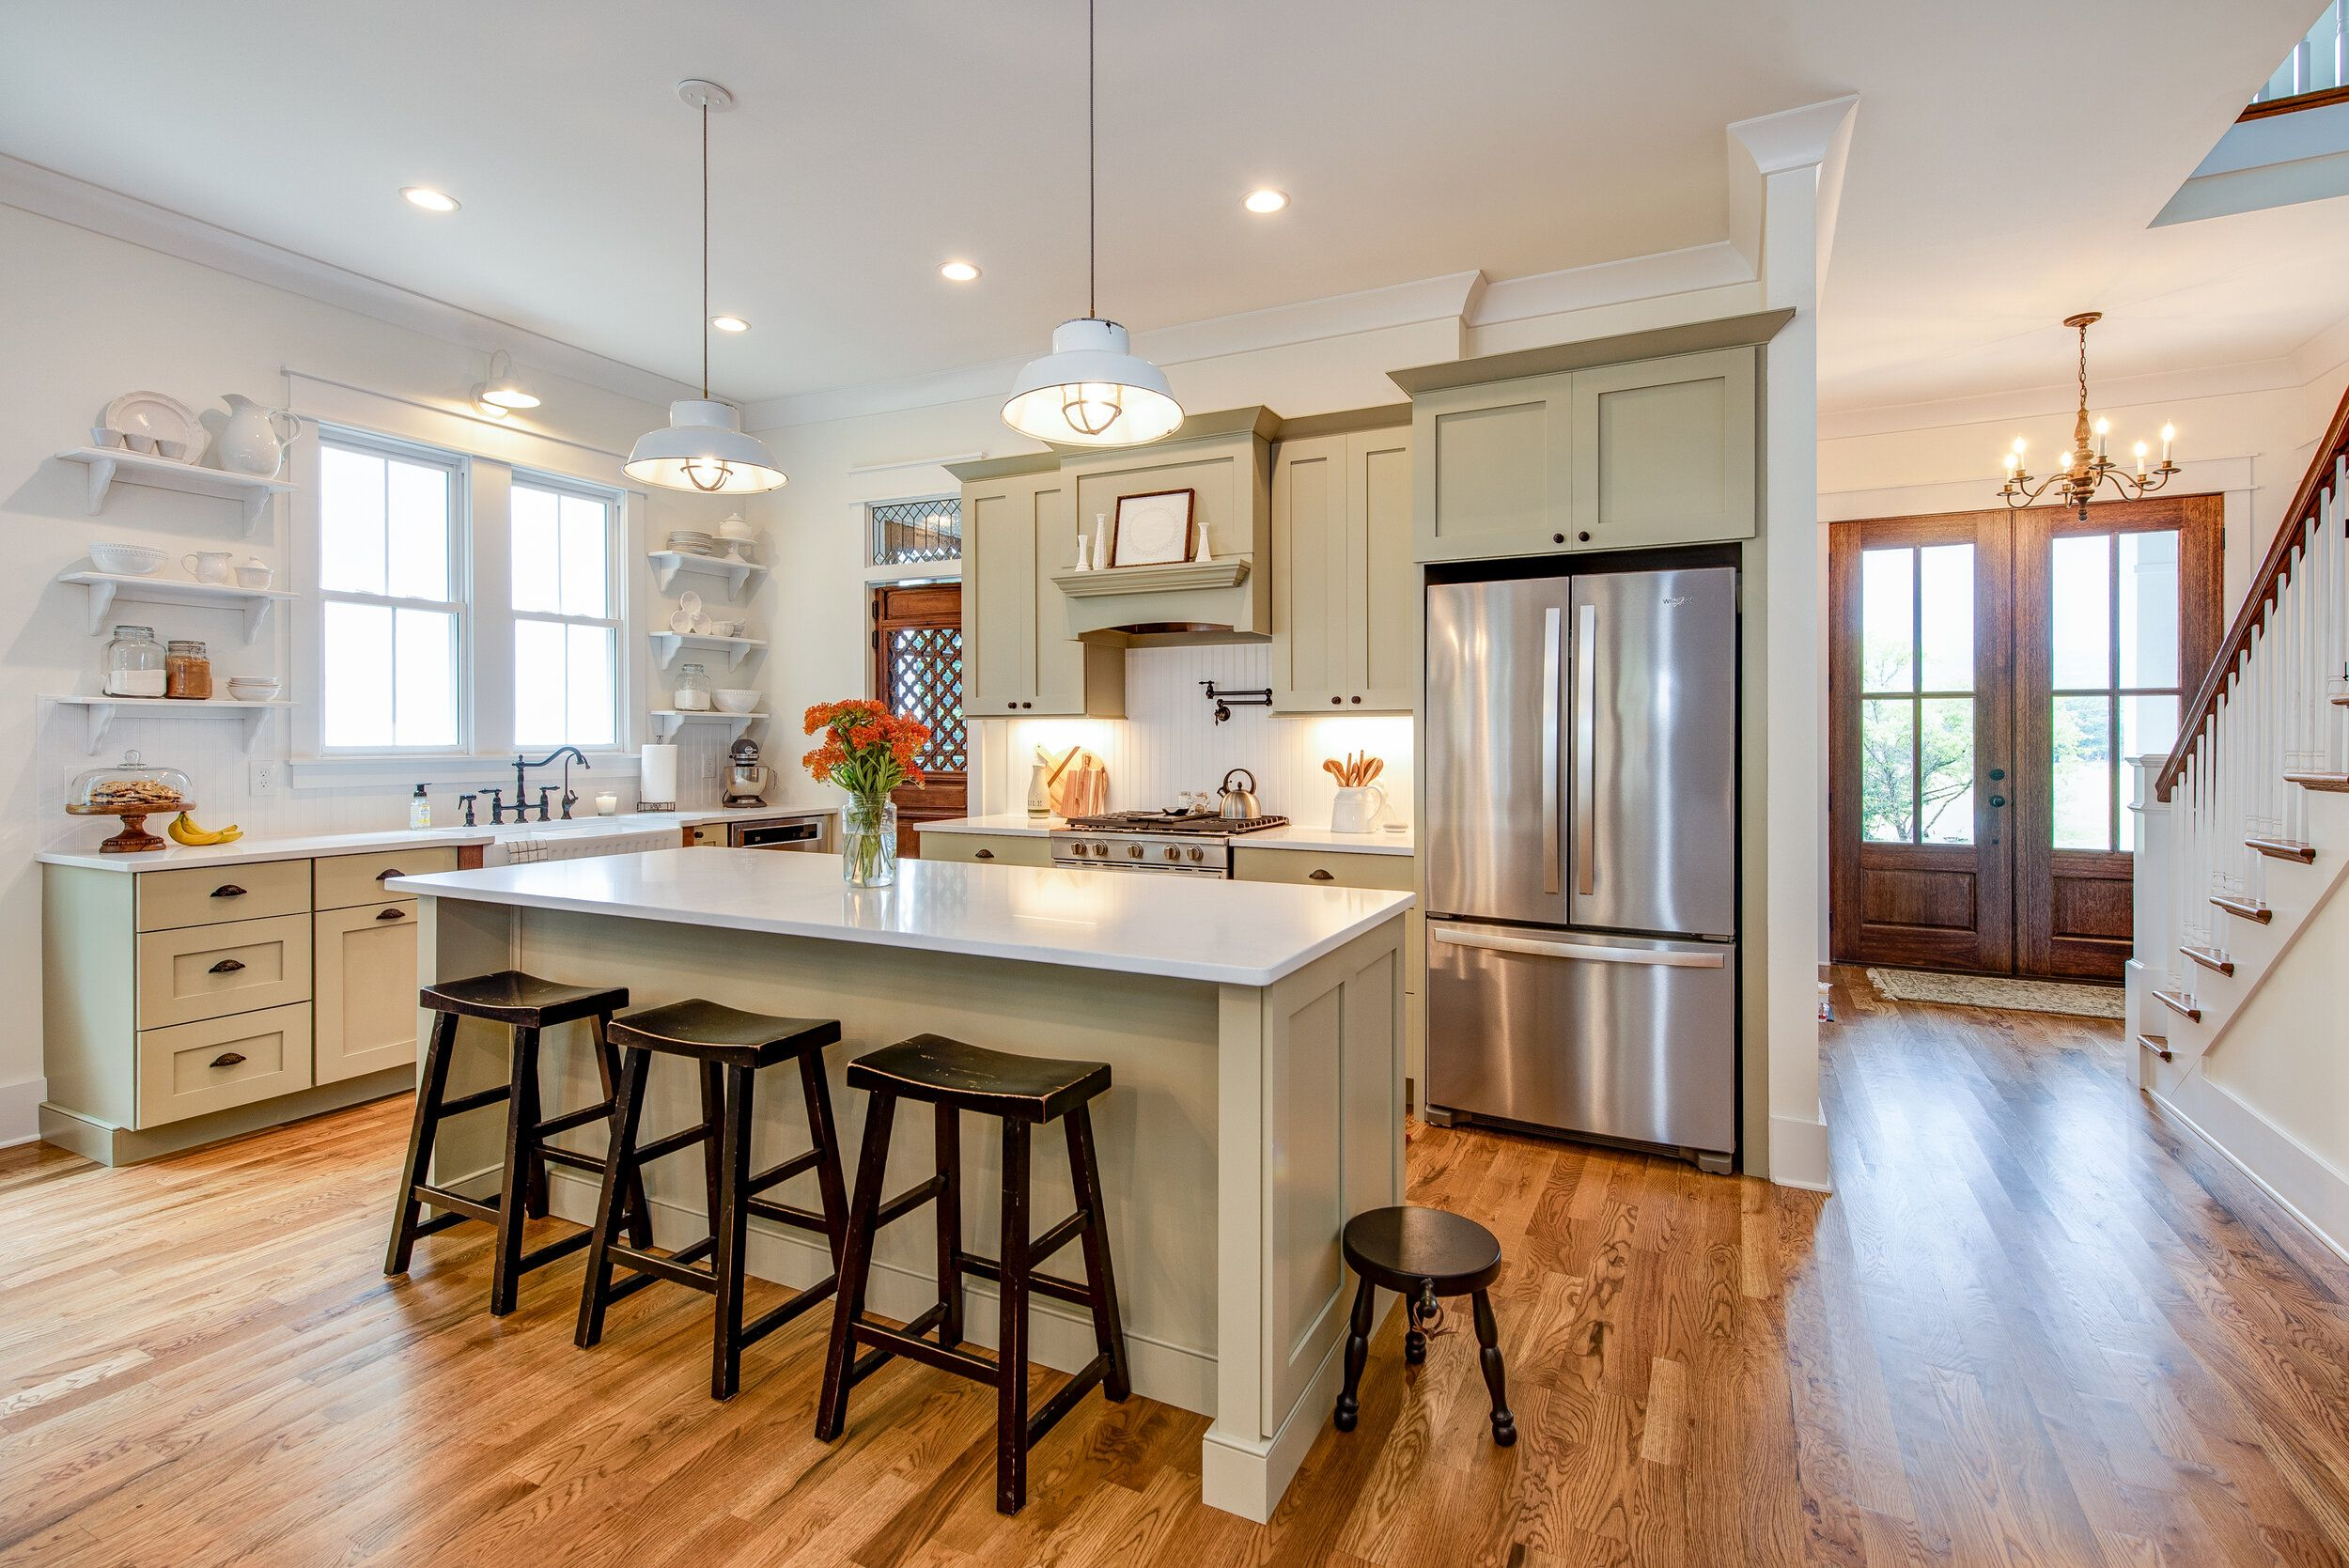 Sticks 2 Stones Design Custom Cabinetry In Knoxville Tennessee Custom Kitchen Cabinets Knox In 2020 Simple Kitchen Remodel Kitchen Remodel Custom Kitchen Cabinets